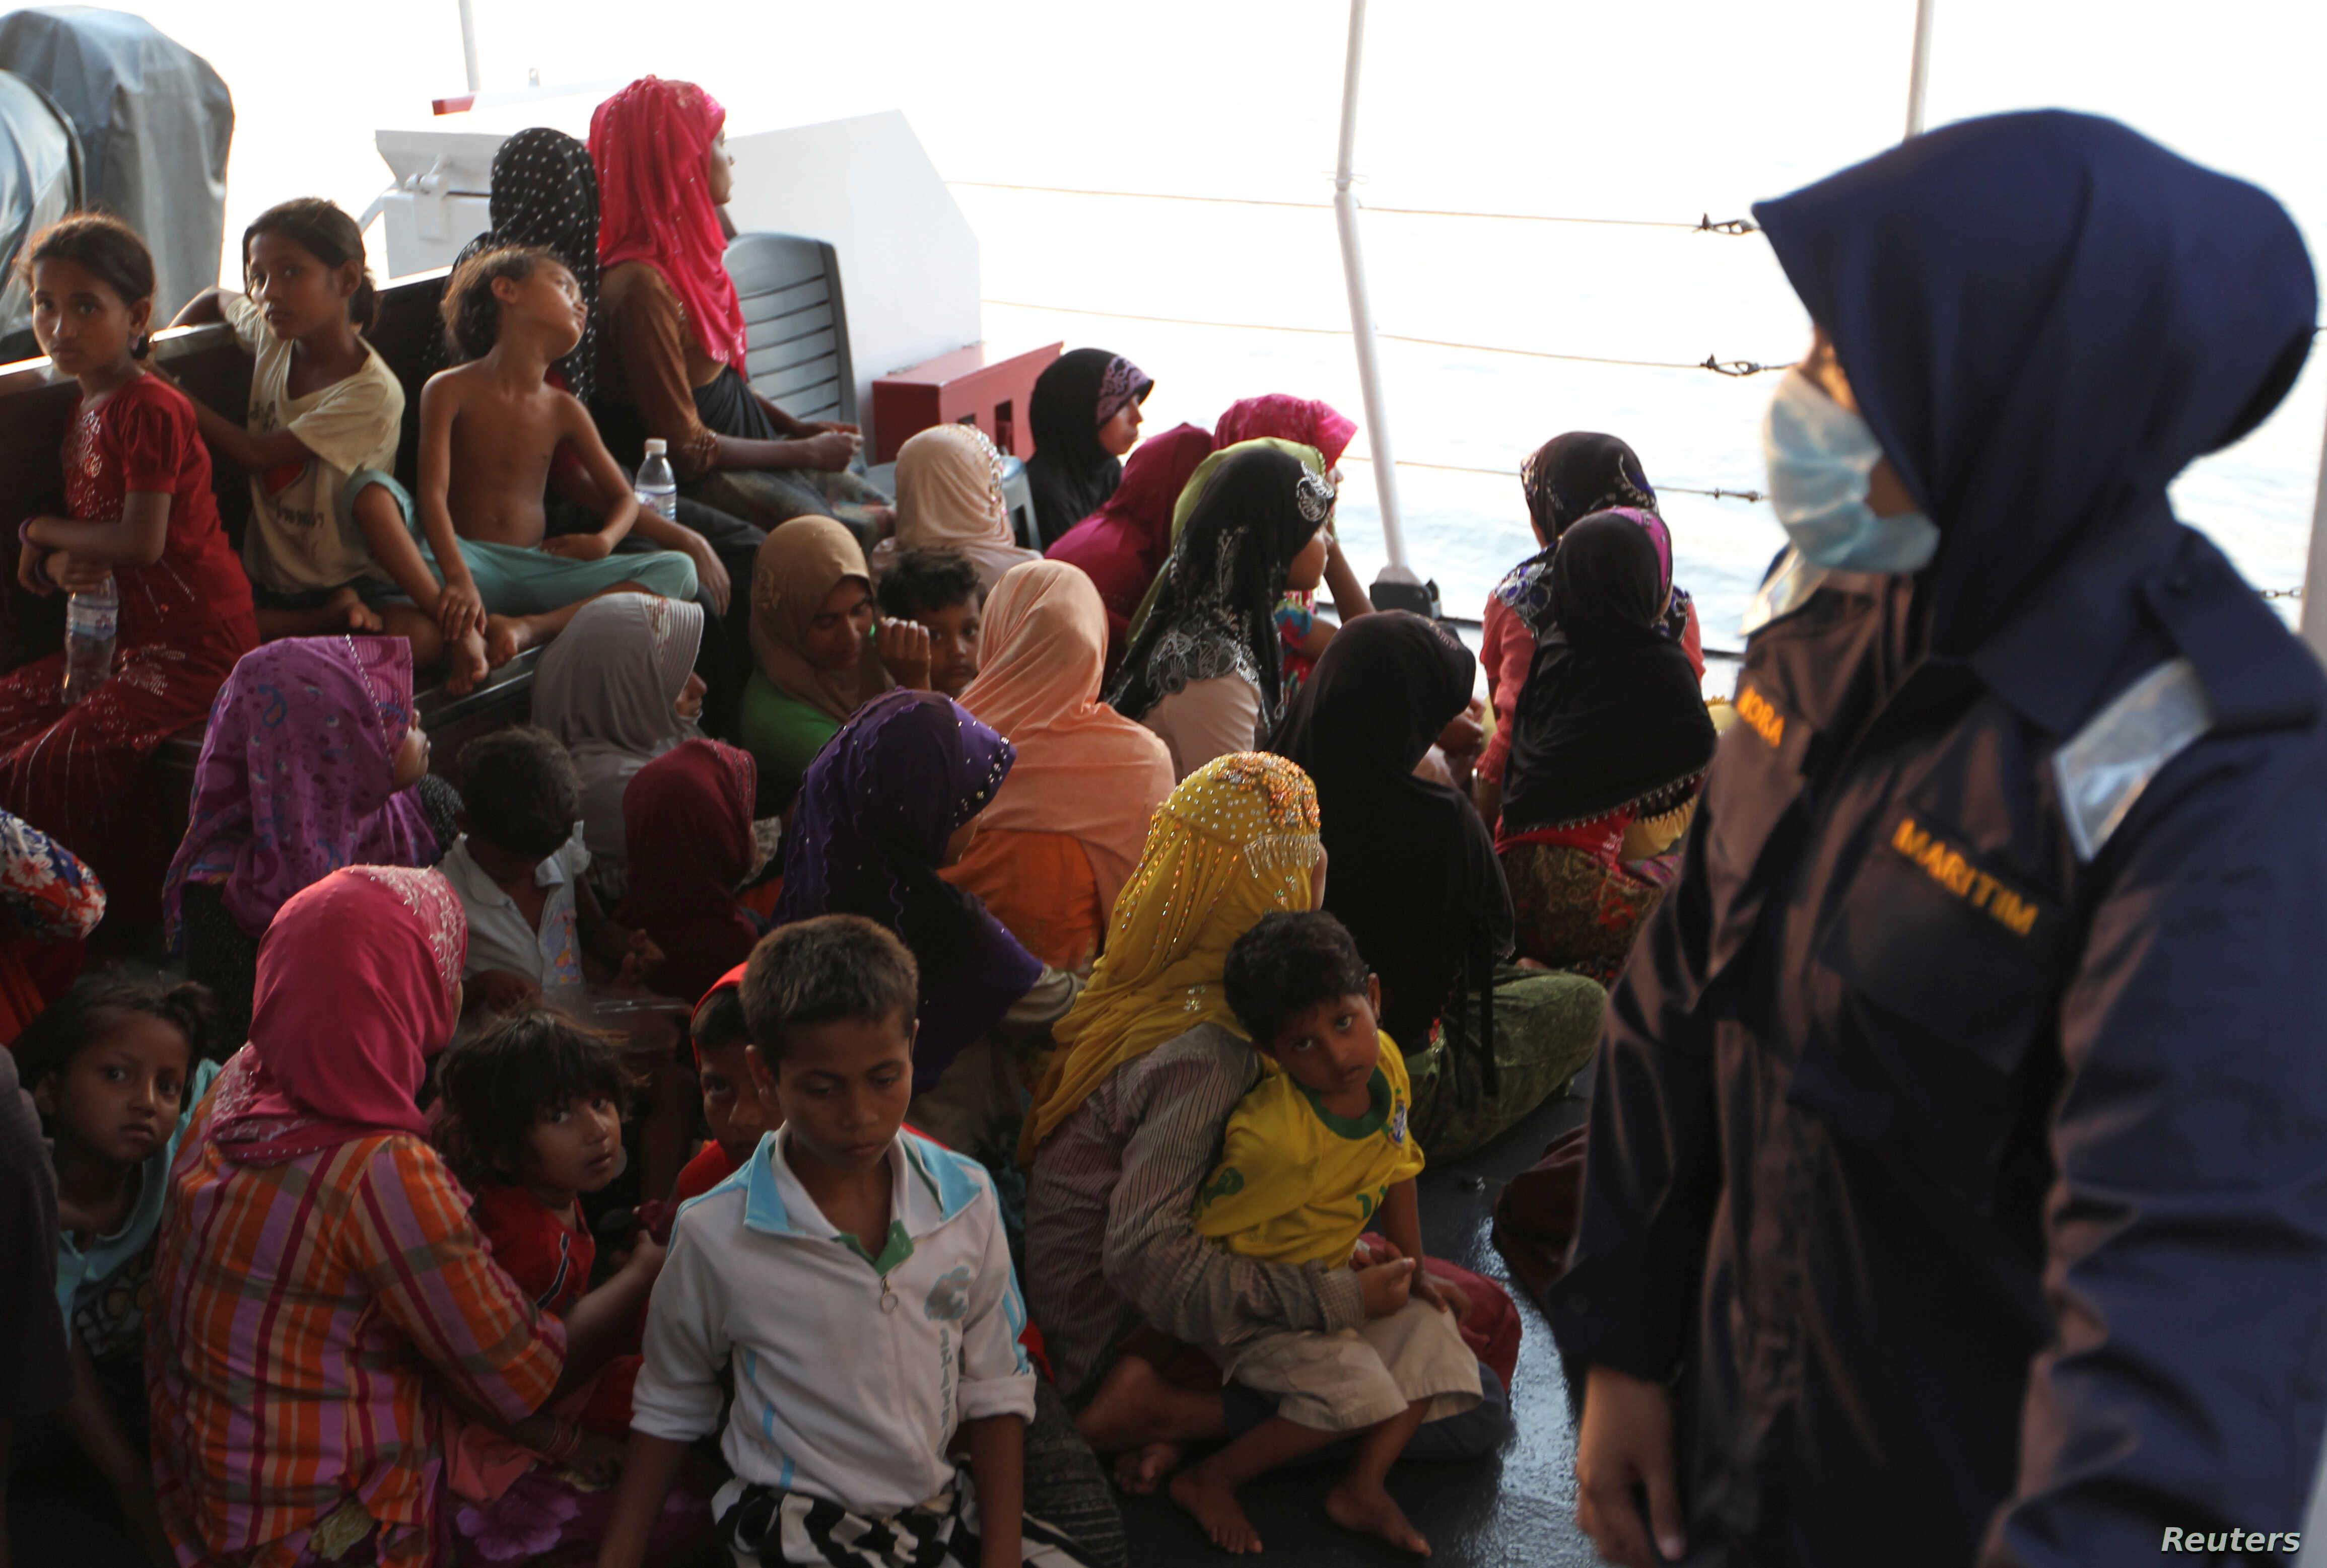 Rohingya refugees who were intercepted by Malaysian Maritime Enforcement Agency off Langkawi island, wait to be escorted to immigration authorities, at the Kuala Kedah ferry jetty, April 3, 2018.